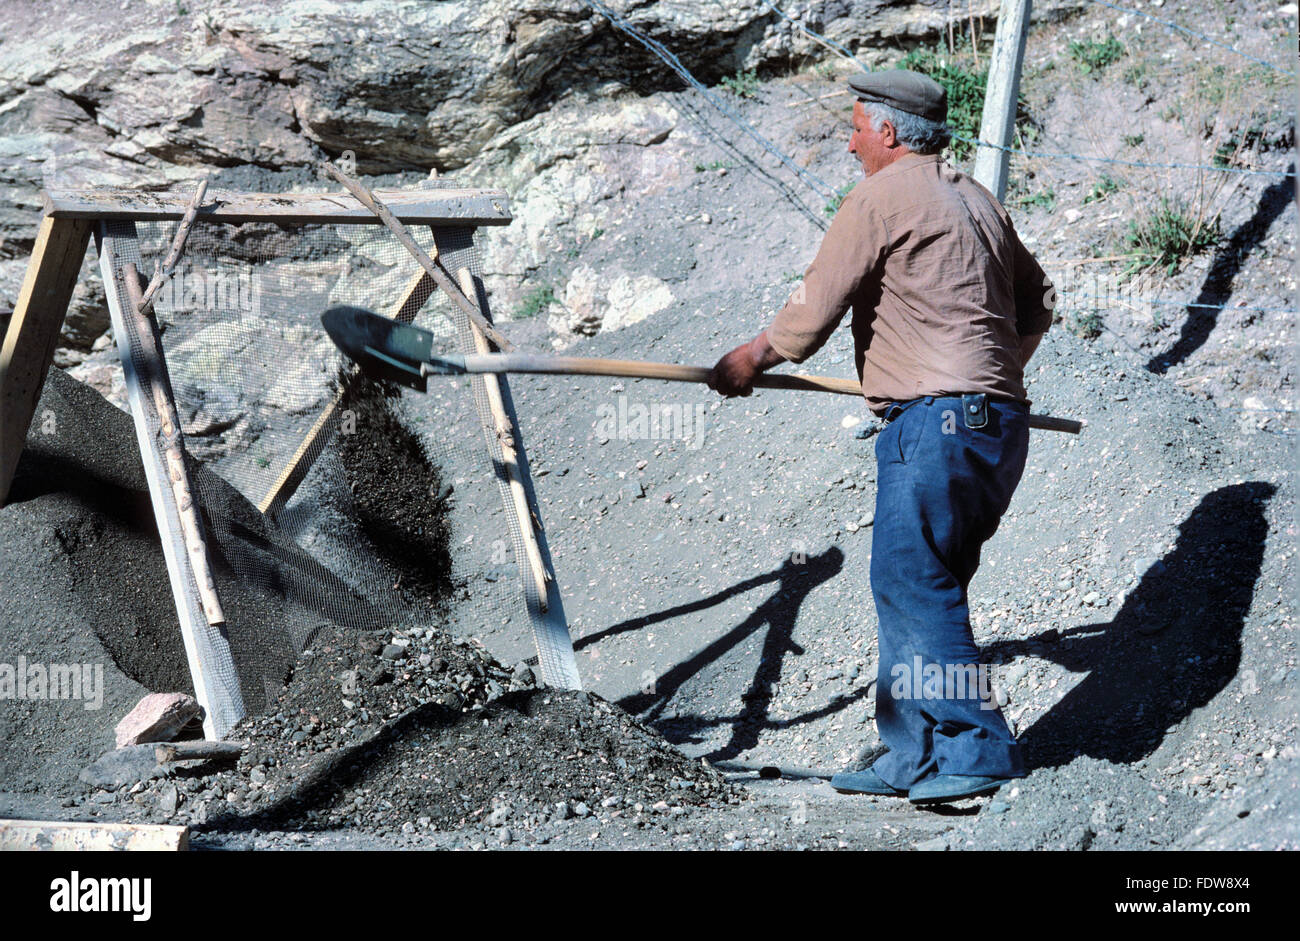 Turkish Manual Worker Workman or Construction Worker Sifting Gravel to Mix Concrete - Stock Image